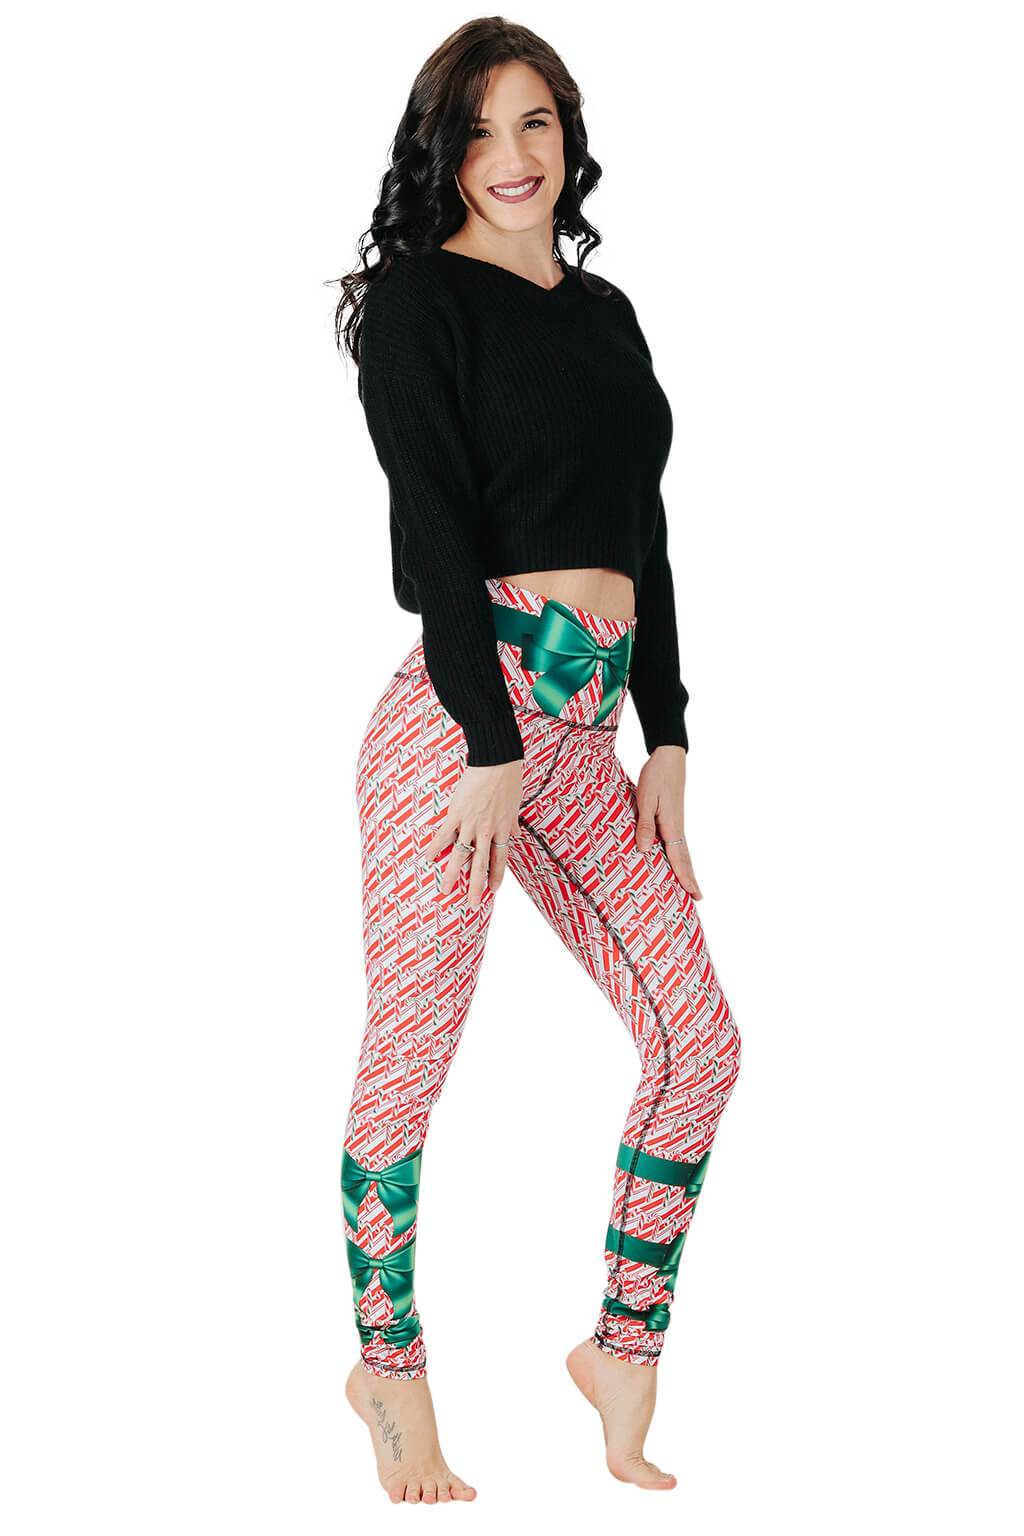 Yoga Democracy Leggings Candy Cane Madness Printed Yoga Leggings